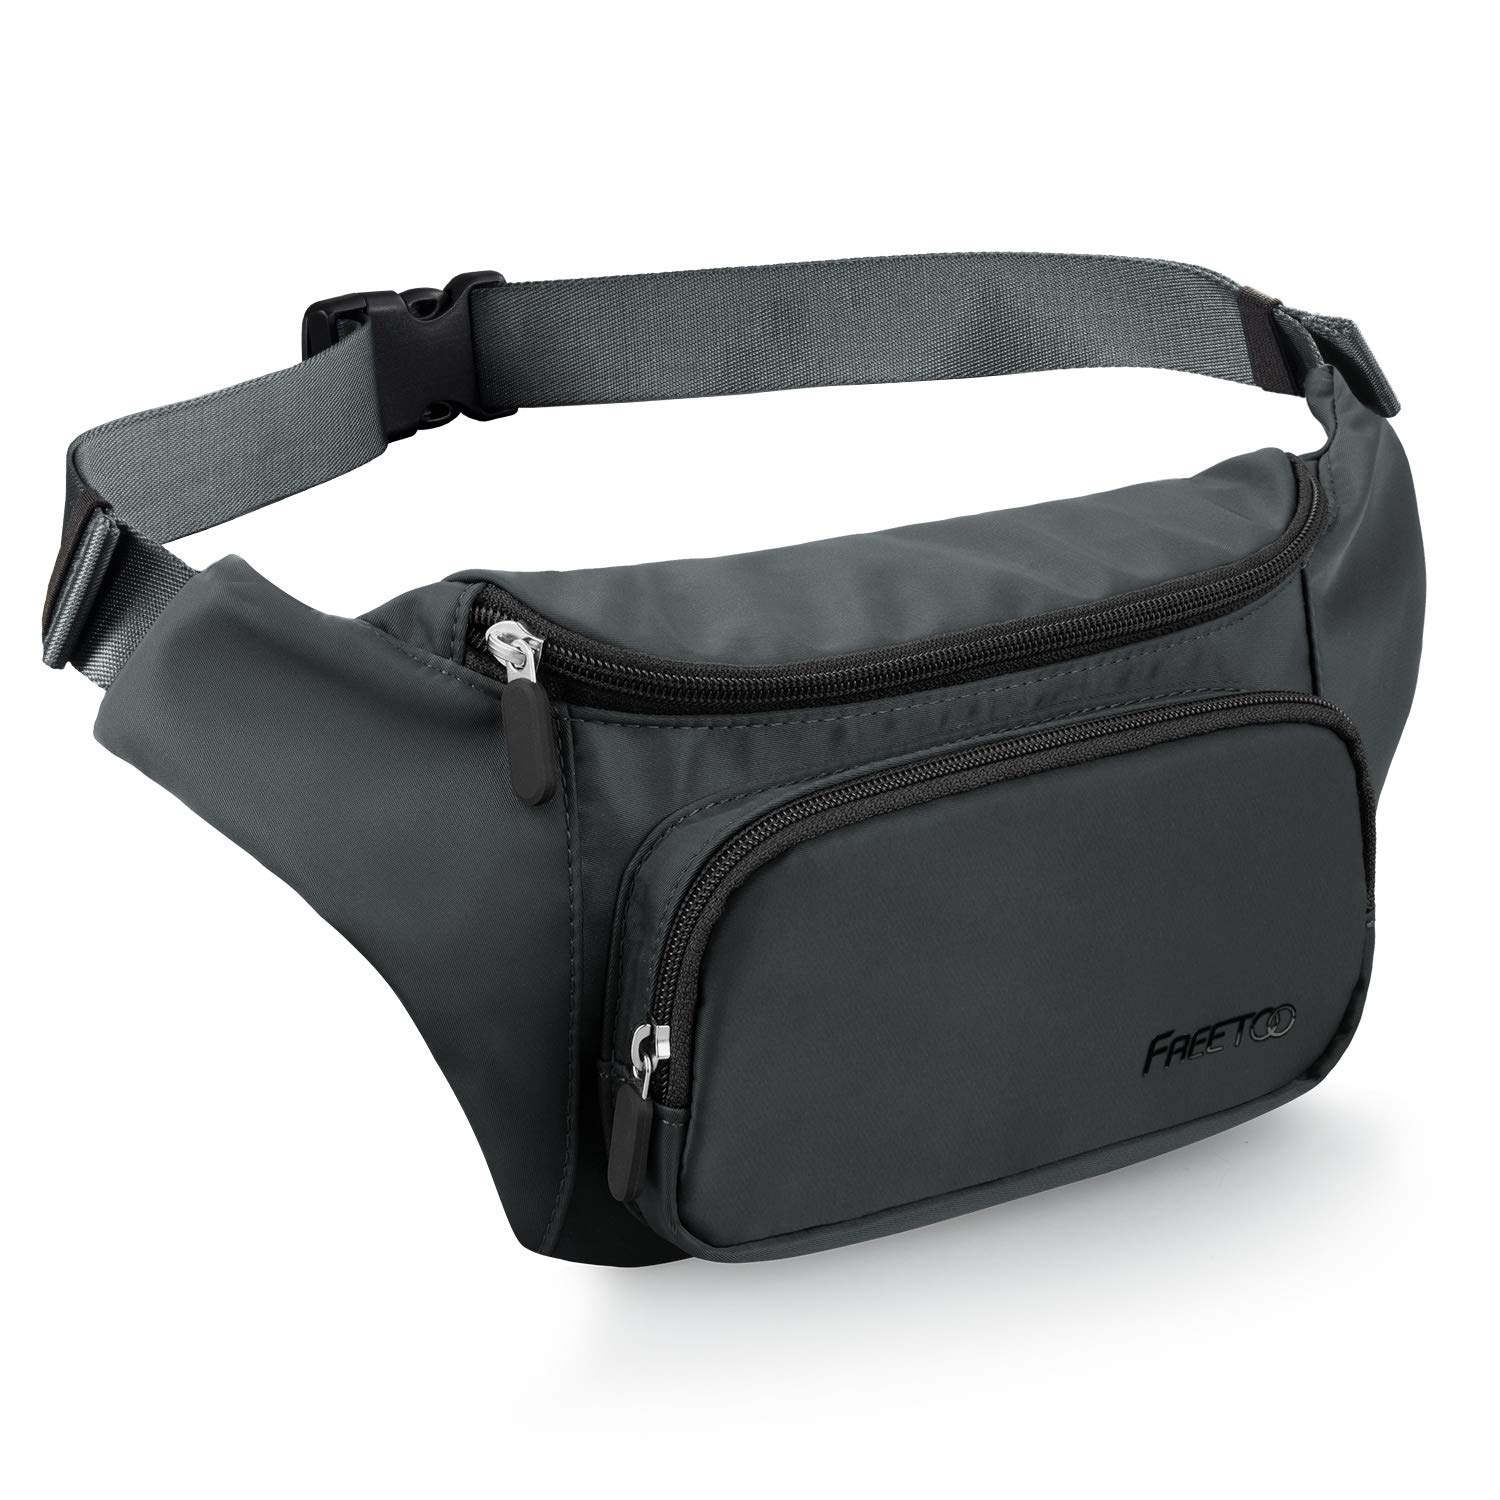 ff86882ee2a FREETOO Fanny Pack Waist Pack for Women, with Large Capacity ...